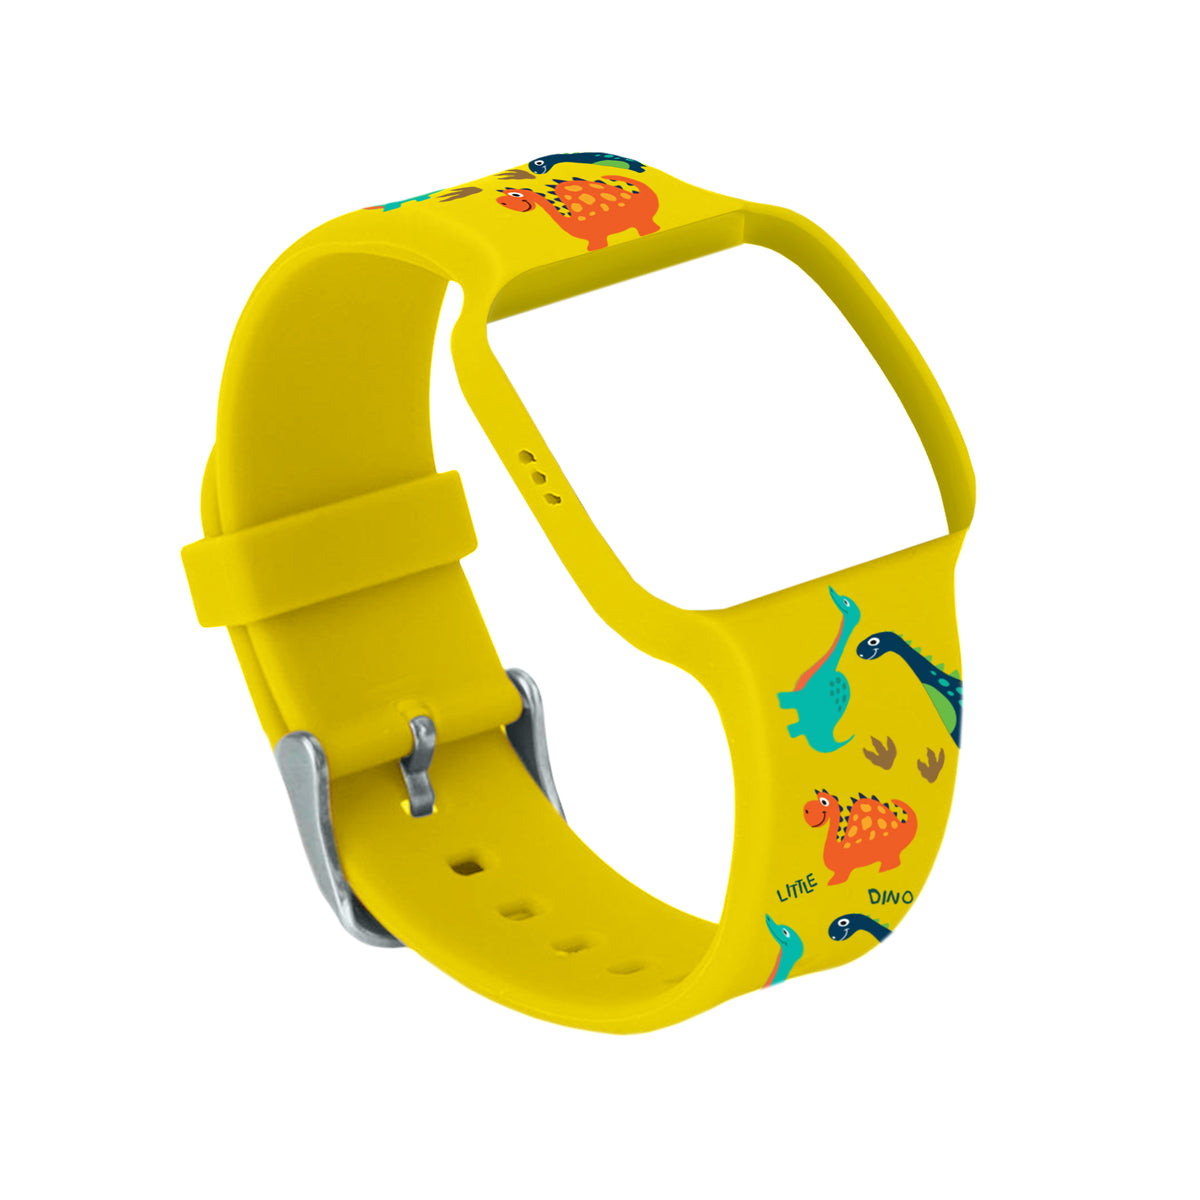 Dinosaur Yellow Watch Band for Athena Futures Potty Training Watch - Athena Futures Inc.